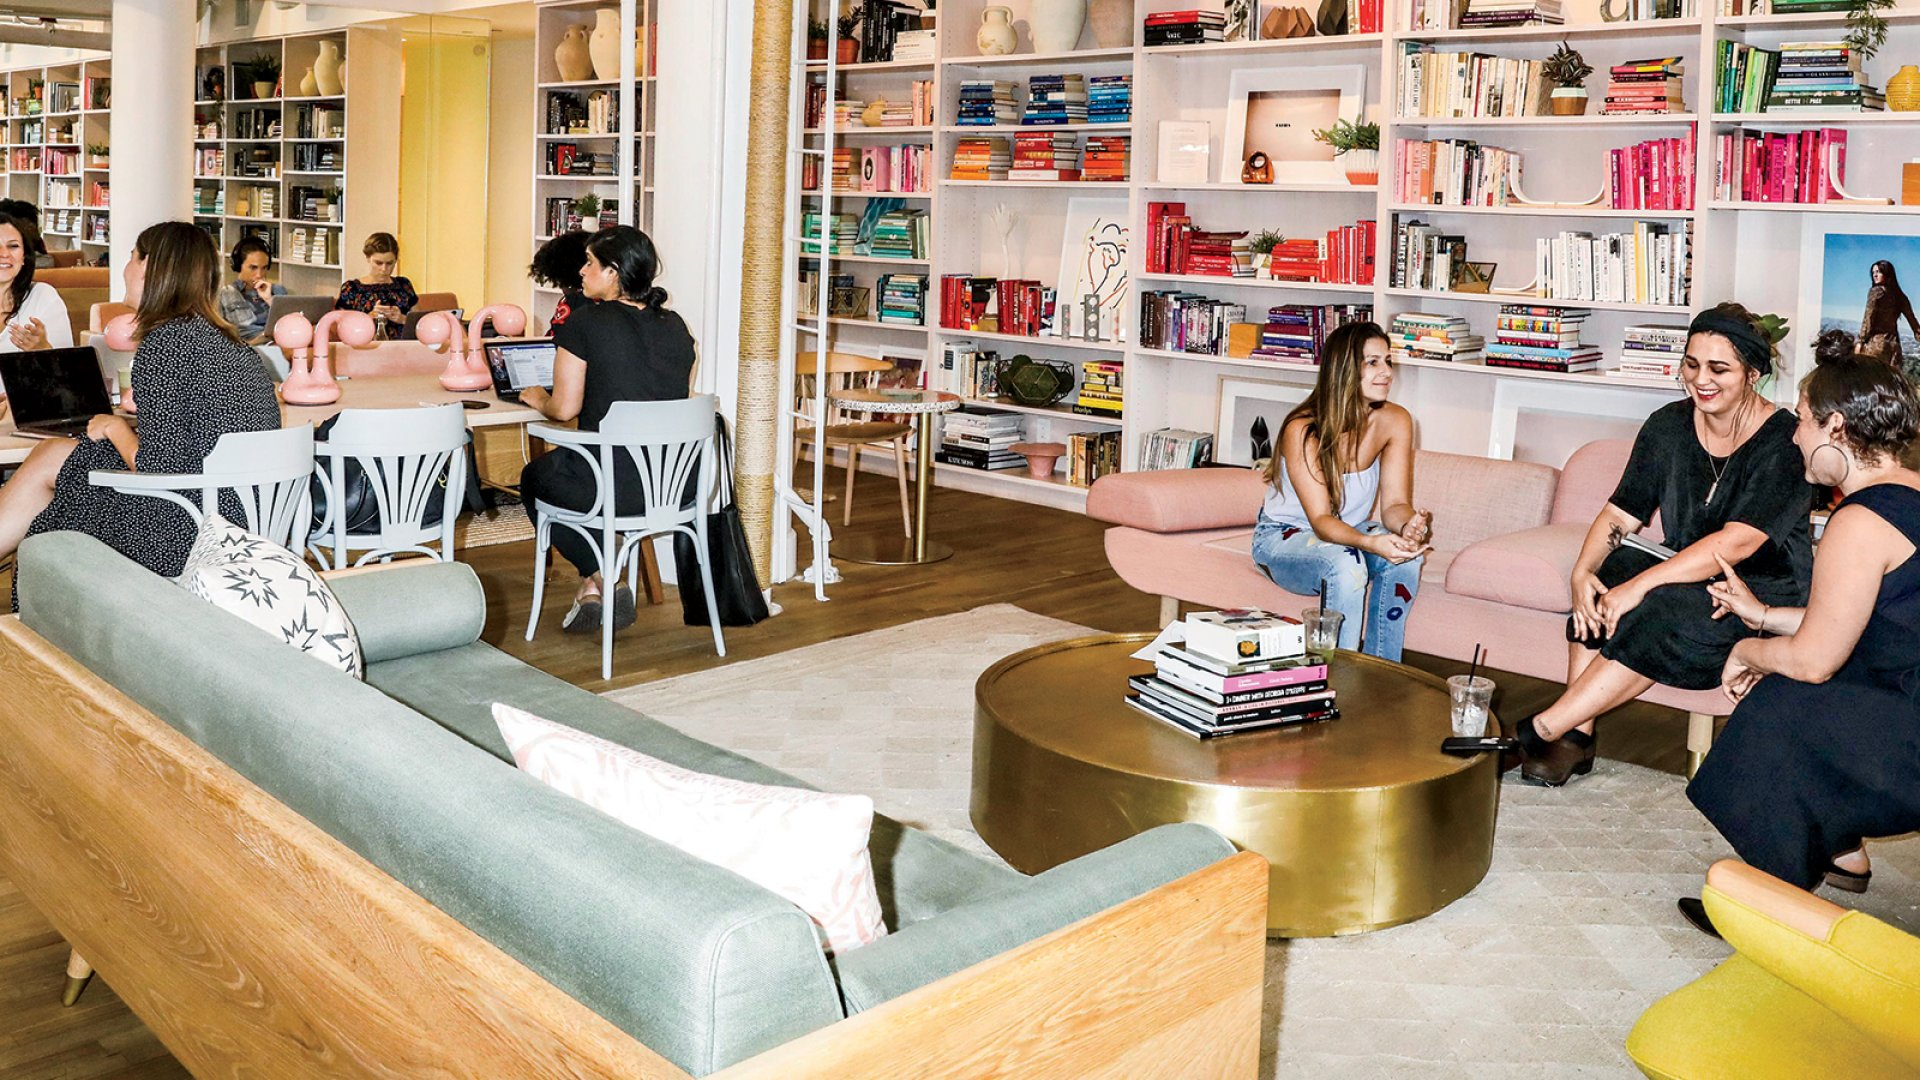 The Wing, in New York City, is a membership-based, female-only co-working-space-meets-social-club that raised $8 million in funding from investors including Kleiner Perkins, NEA, and the co-founders of SoulCycle--and plans to scale nationally.